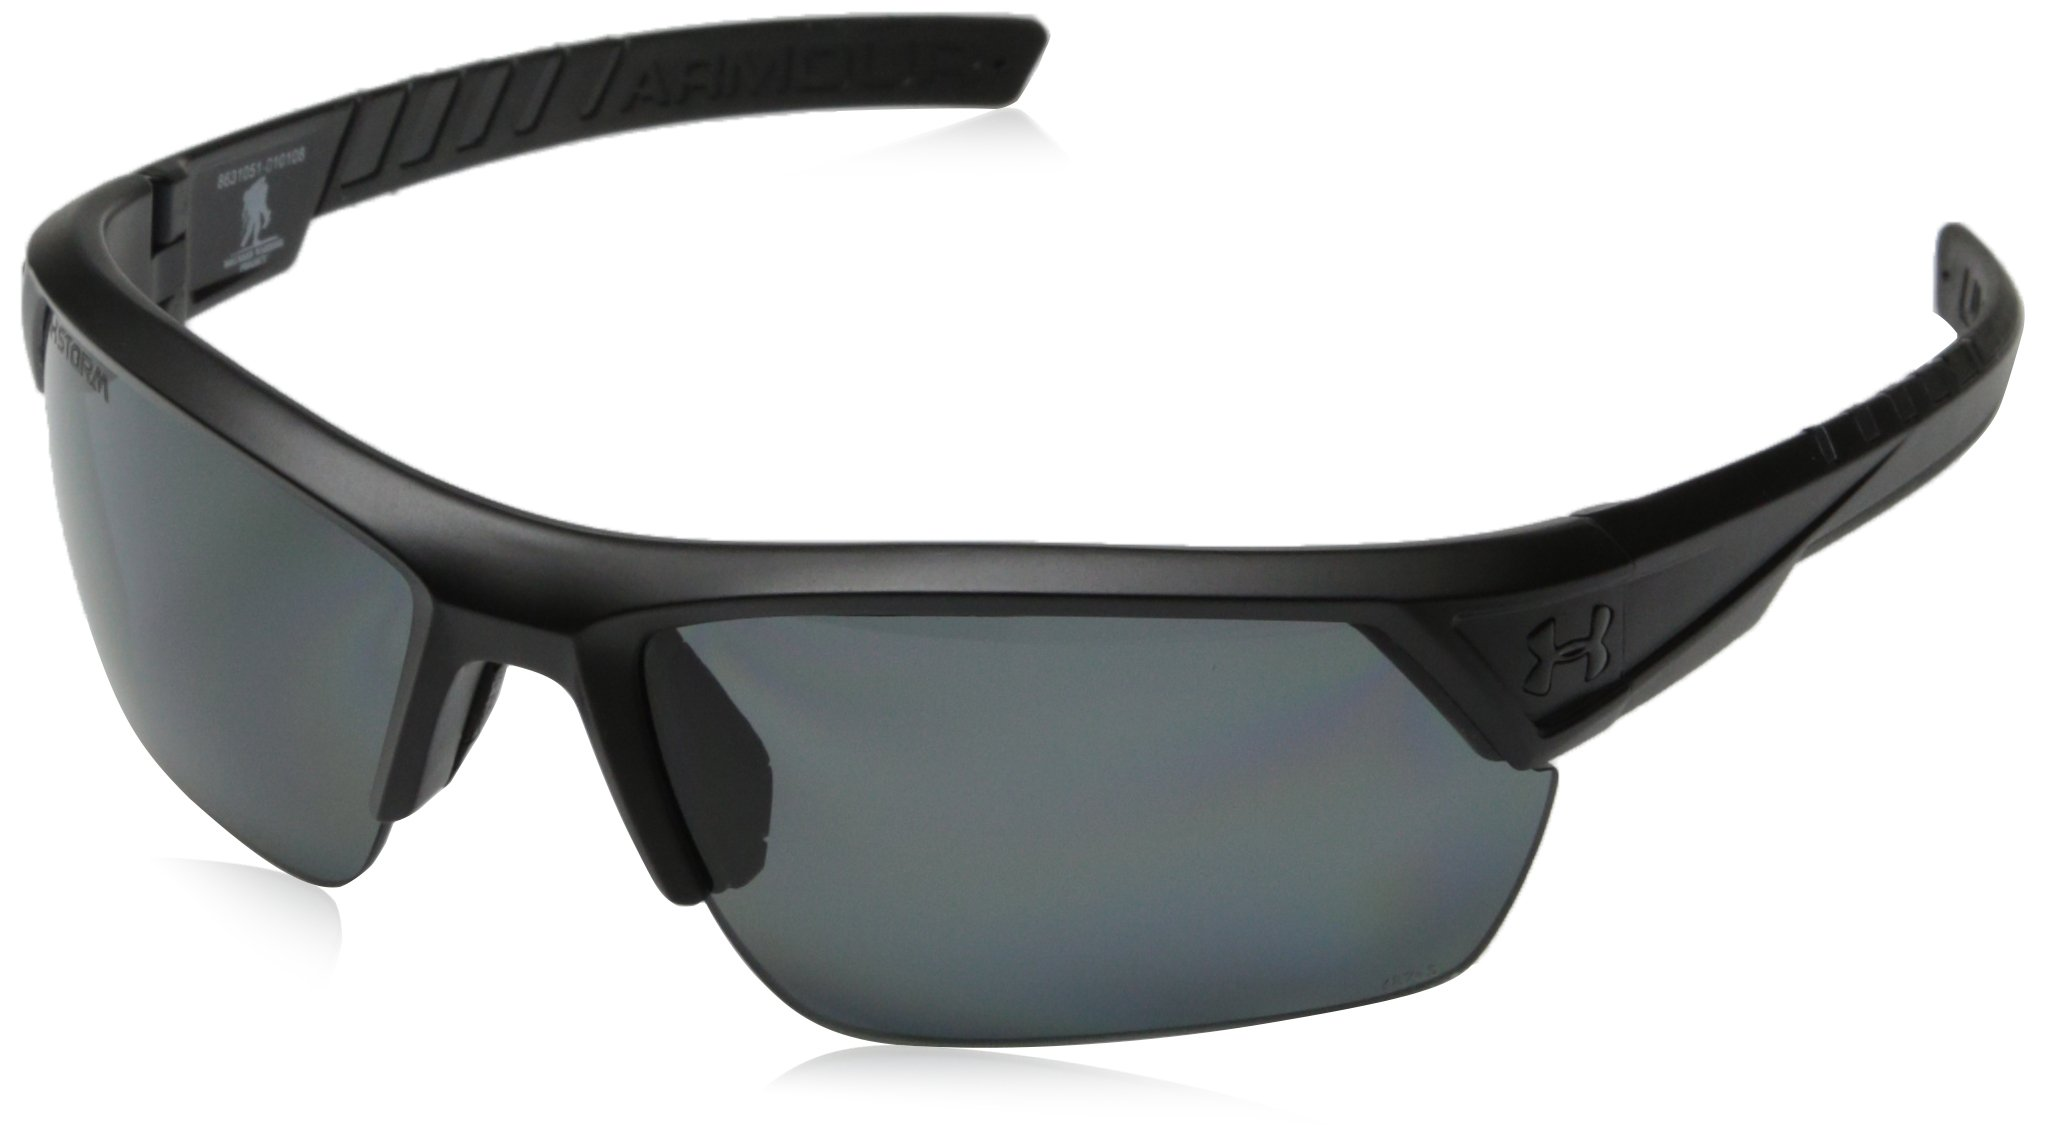 Under Armour Sunglasses Rectangular, UA IGNITER 2.0 Storm (ANSI) Satin Black Frame/Gray Polarized Lens, M/L by Under Armour